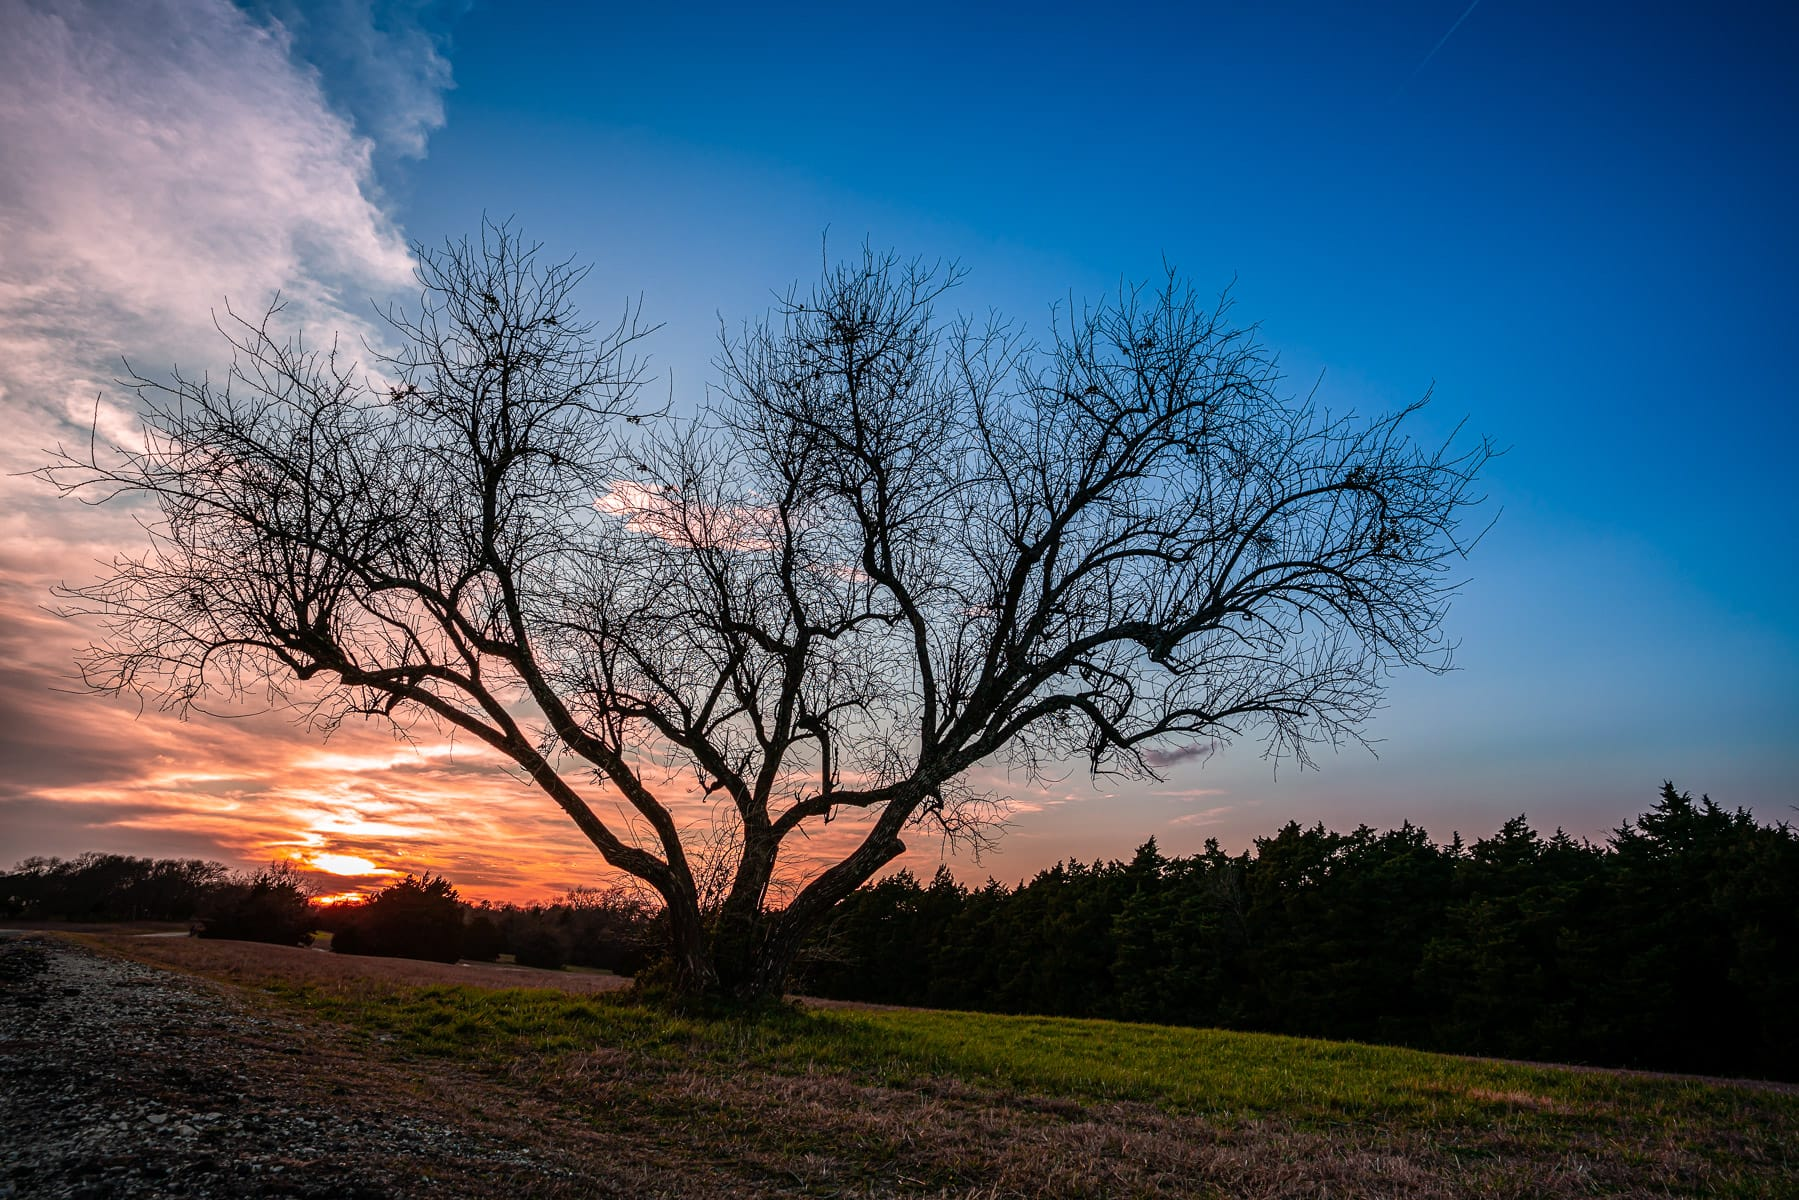 The sun sets on a tree at McKinney, Texas' Erwin Park.